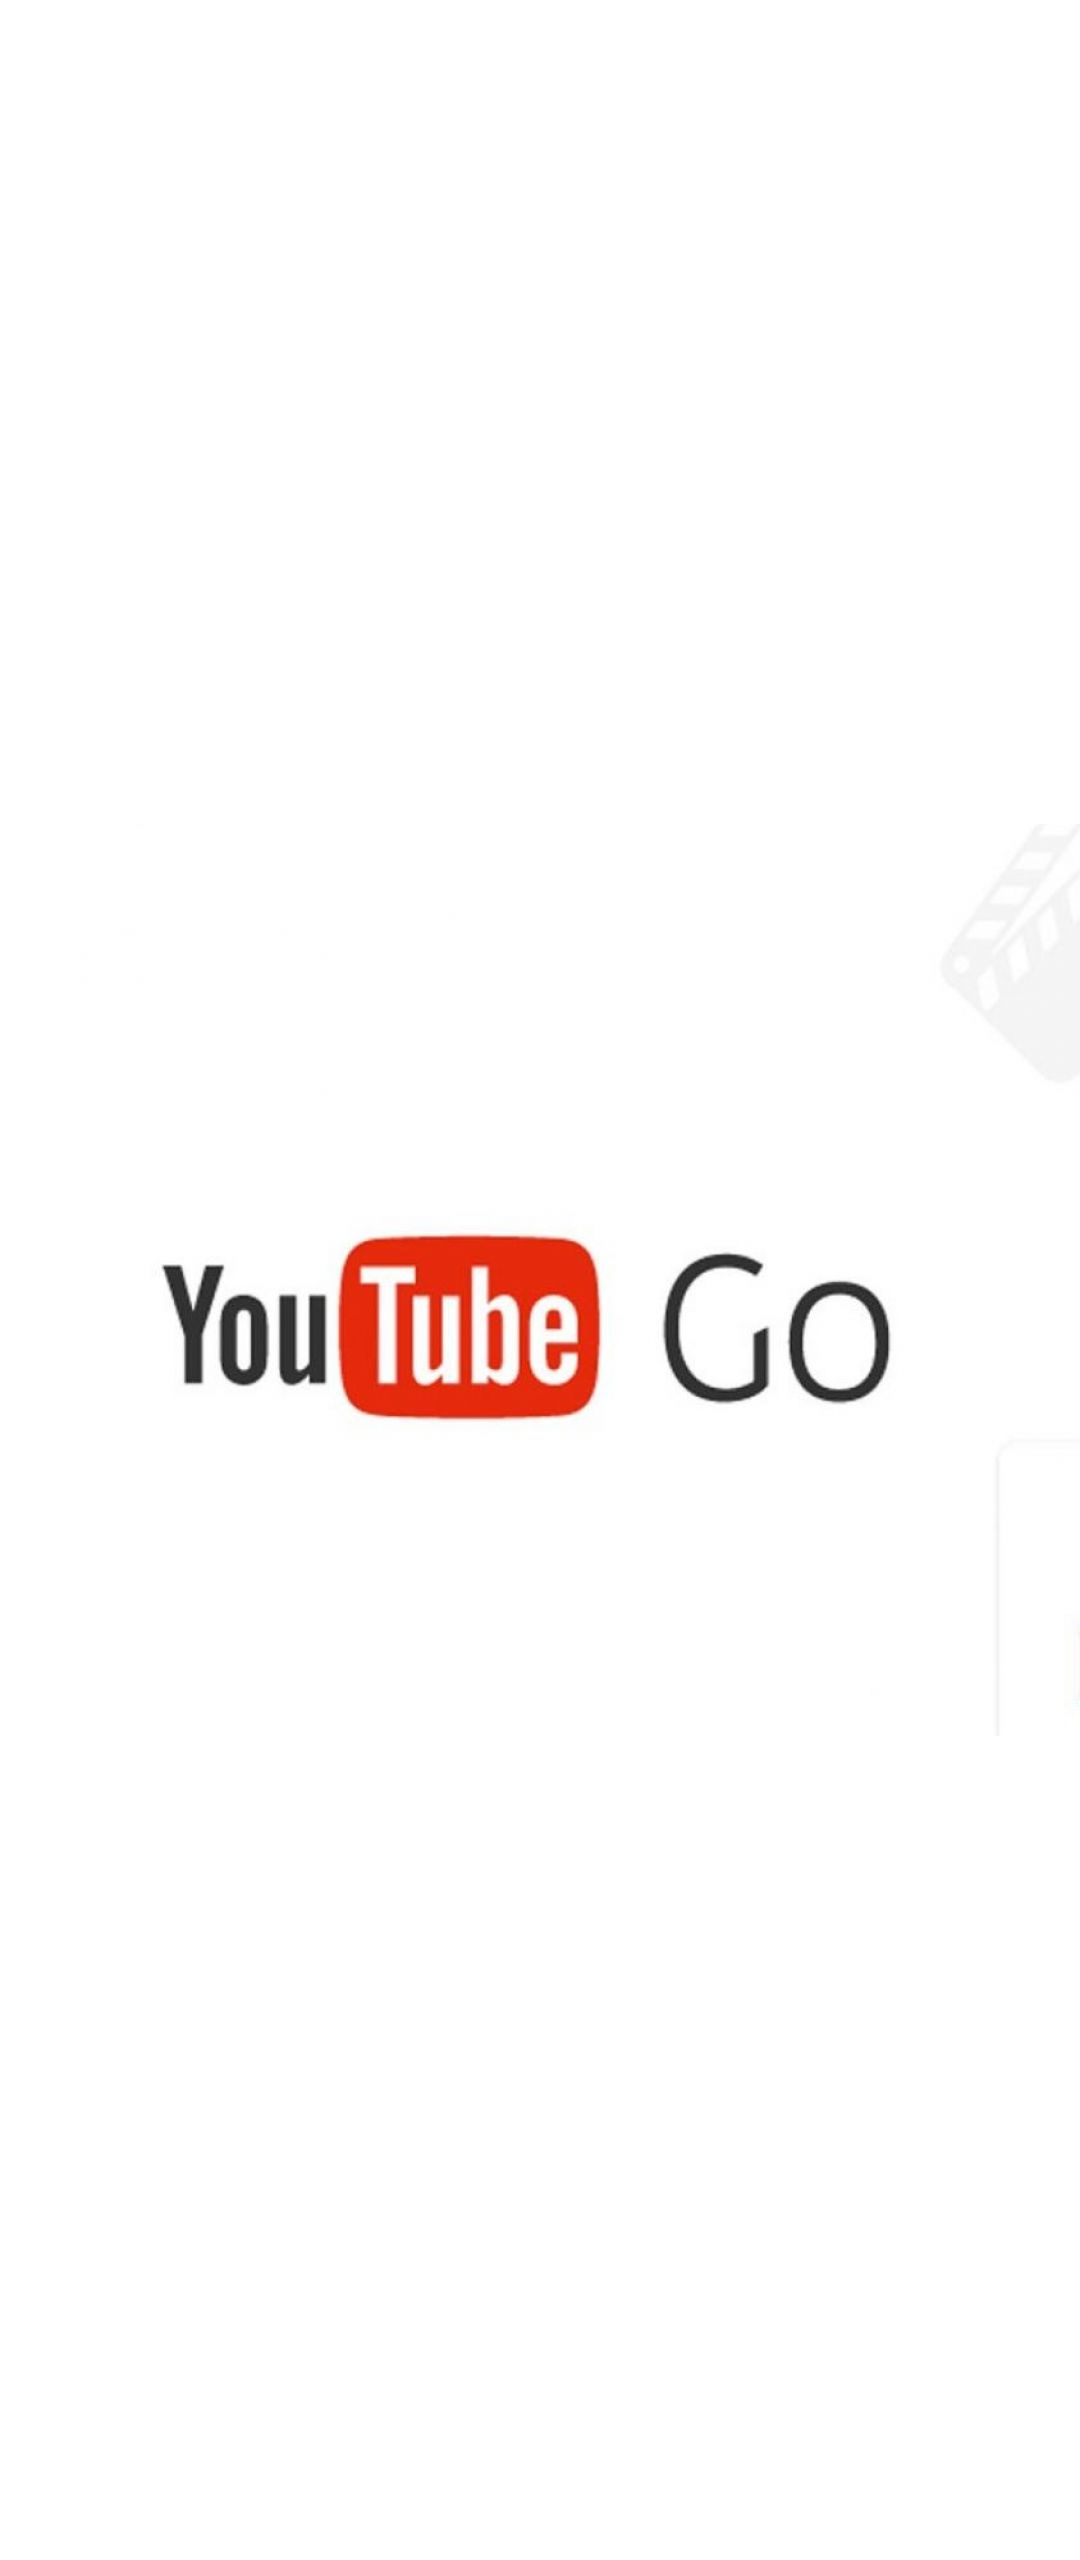 Beta de YouTube Go ya disponible, te permite ver videos offline